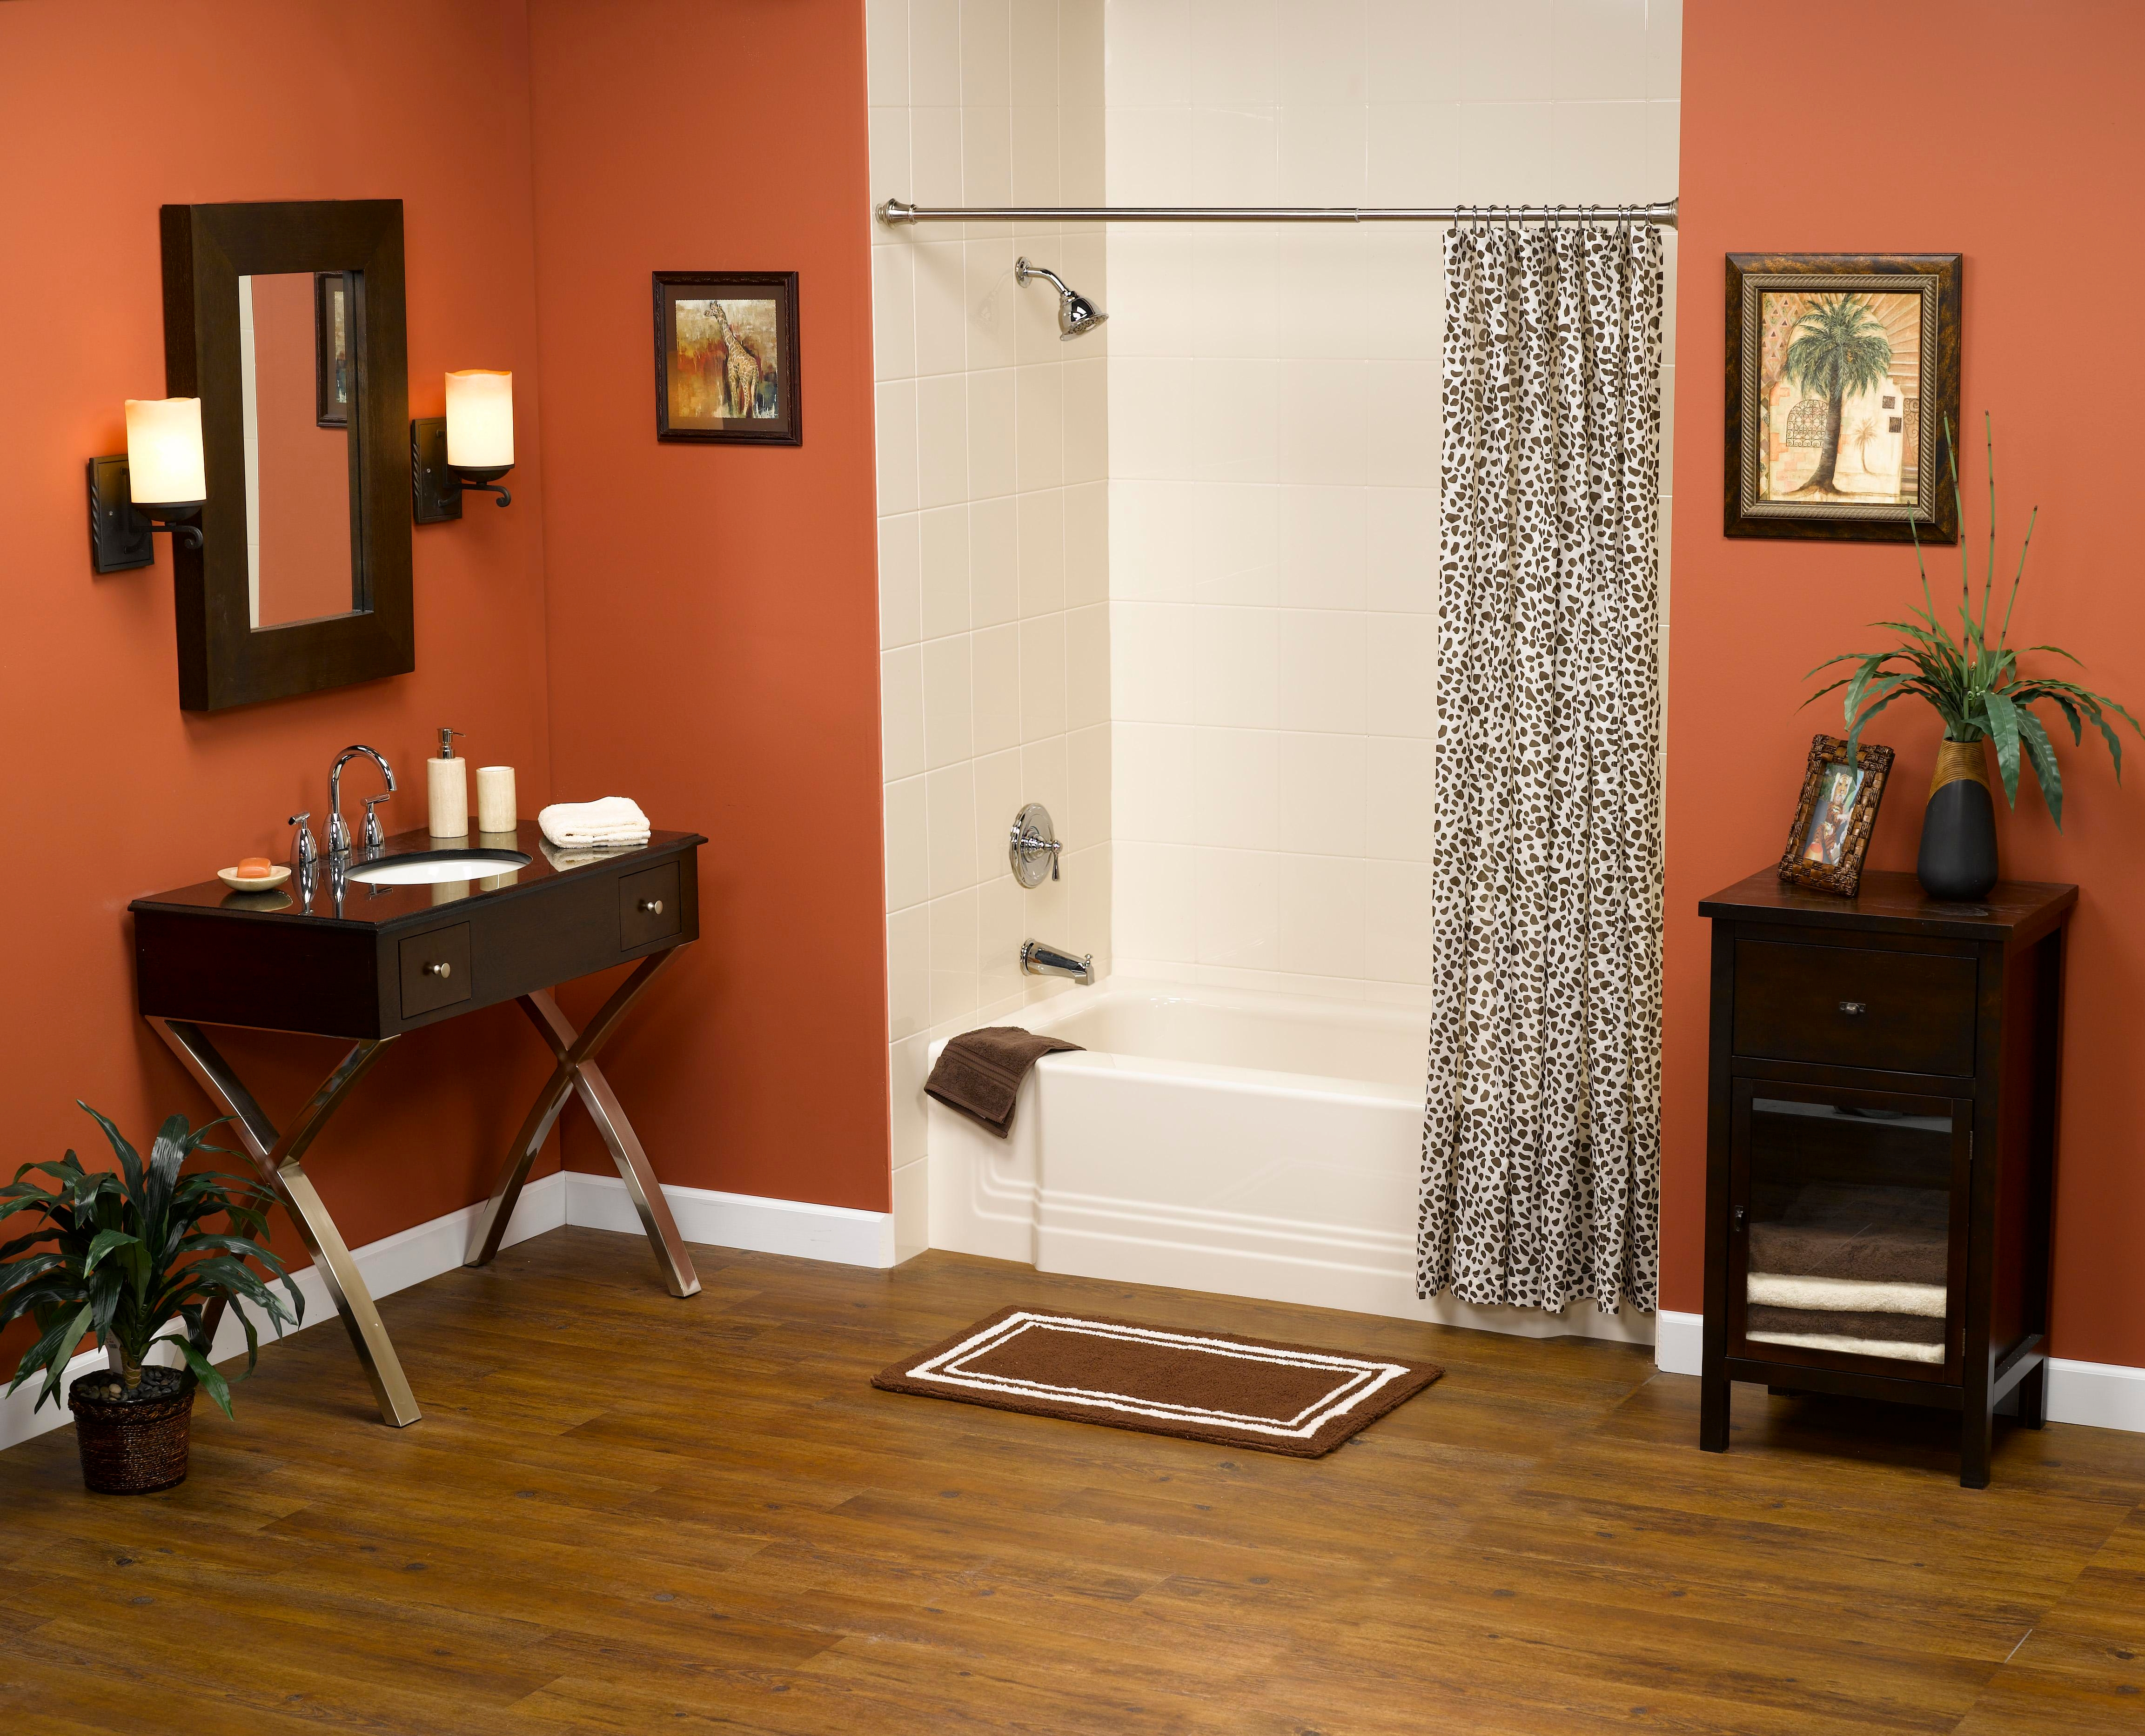 Green Star Home Remodeling Group LLC In Louisville KY 502 762 7